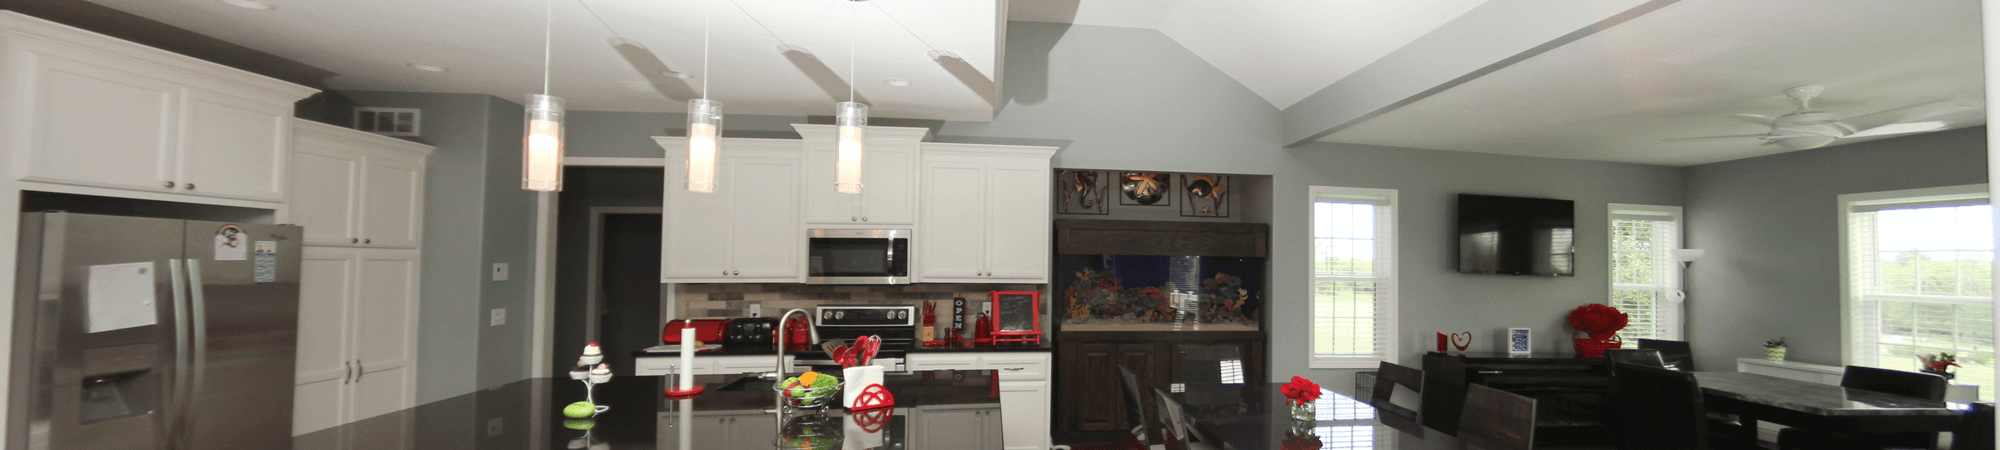 Kitchen Remodel In Kansas City Lee 39 S Summit Your Experts In Remodeling